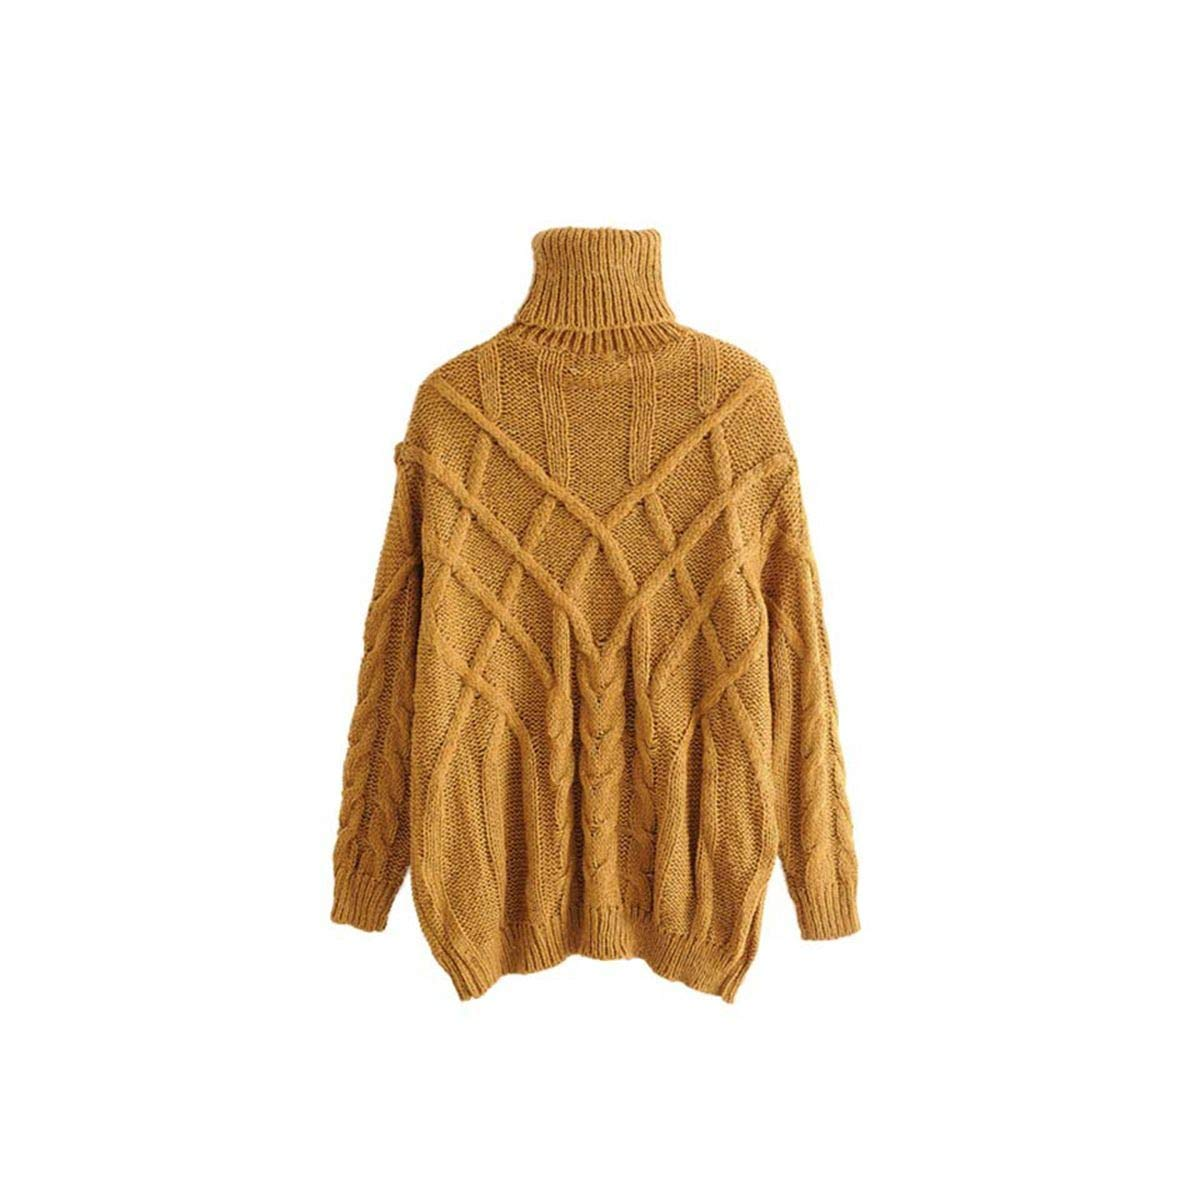 BRNEBN Women Turtleneck Knitted Sweater Long Sleeve Stretchy Solid Pullovers Female Cozy Warm Casual Loose Top